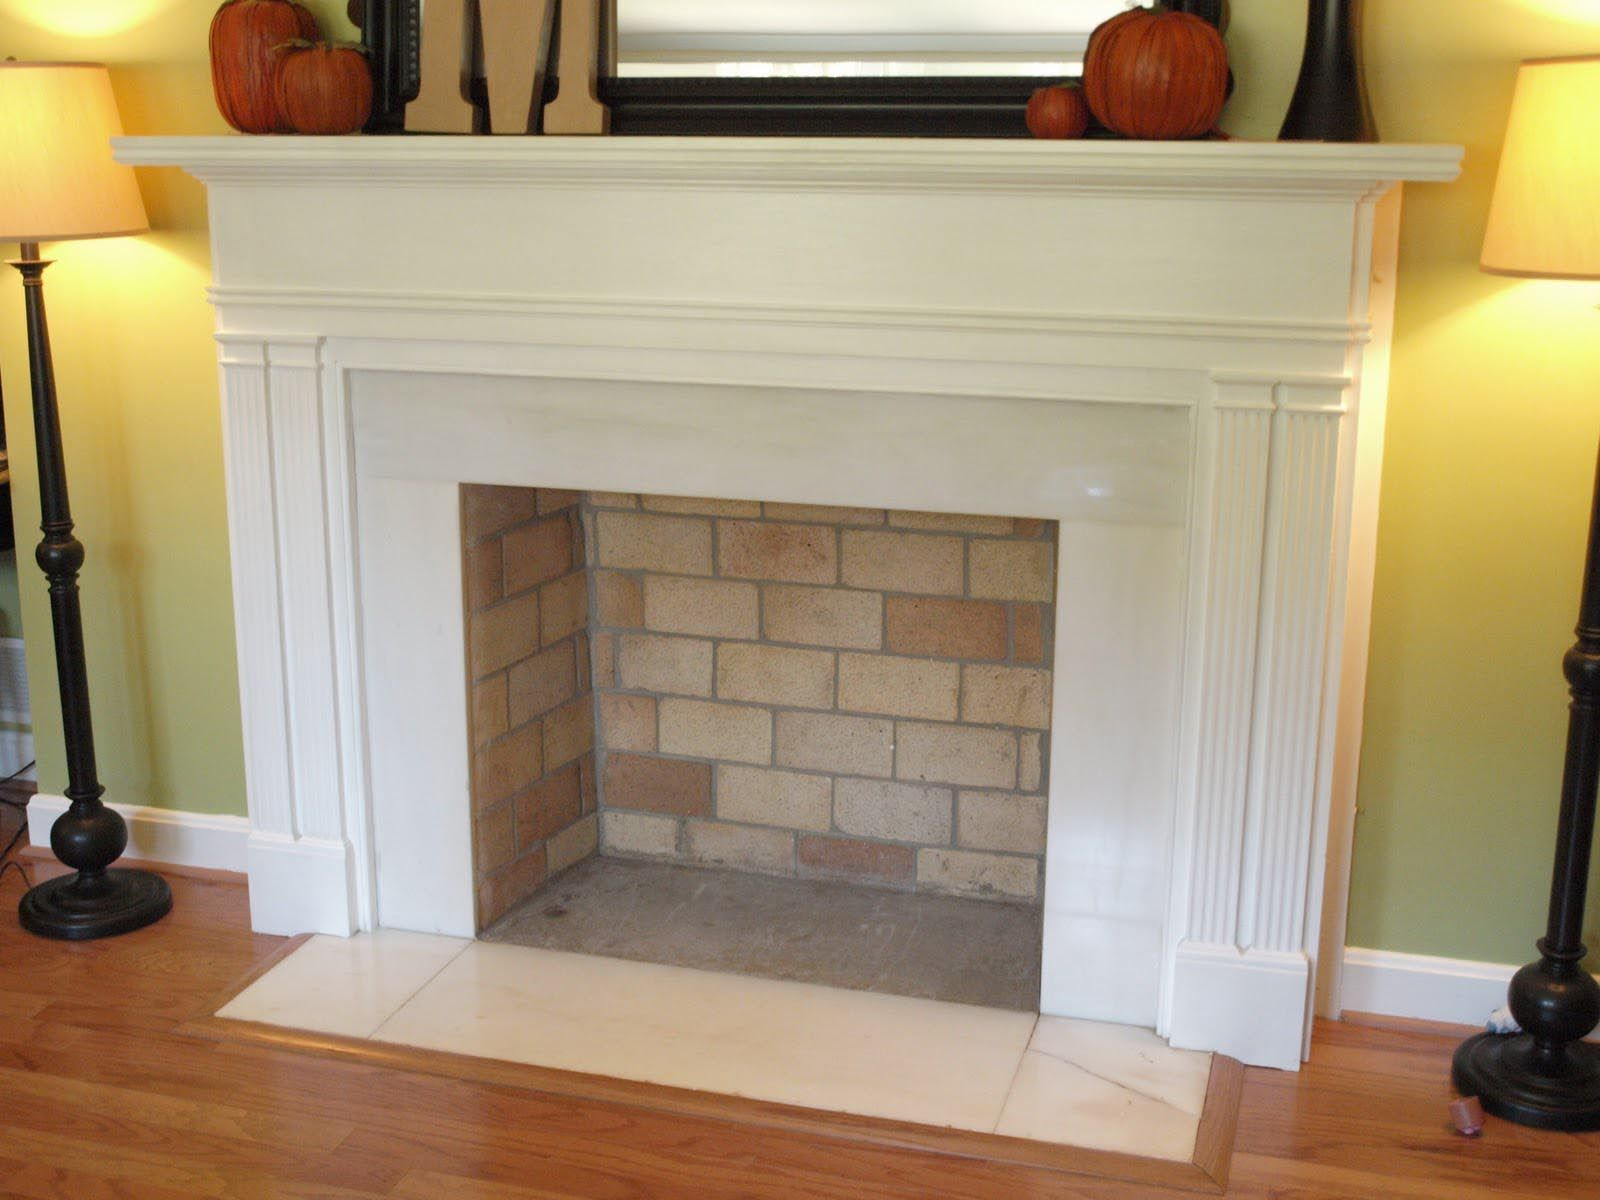 Faux Fireplace Insert Diy Building A Faux Fireplace Diy Tricks Pinterest Faux